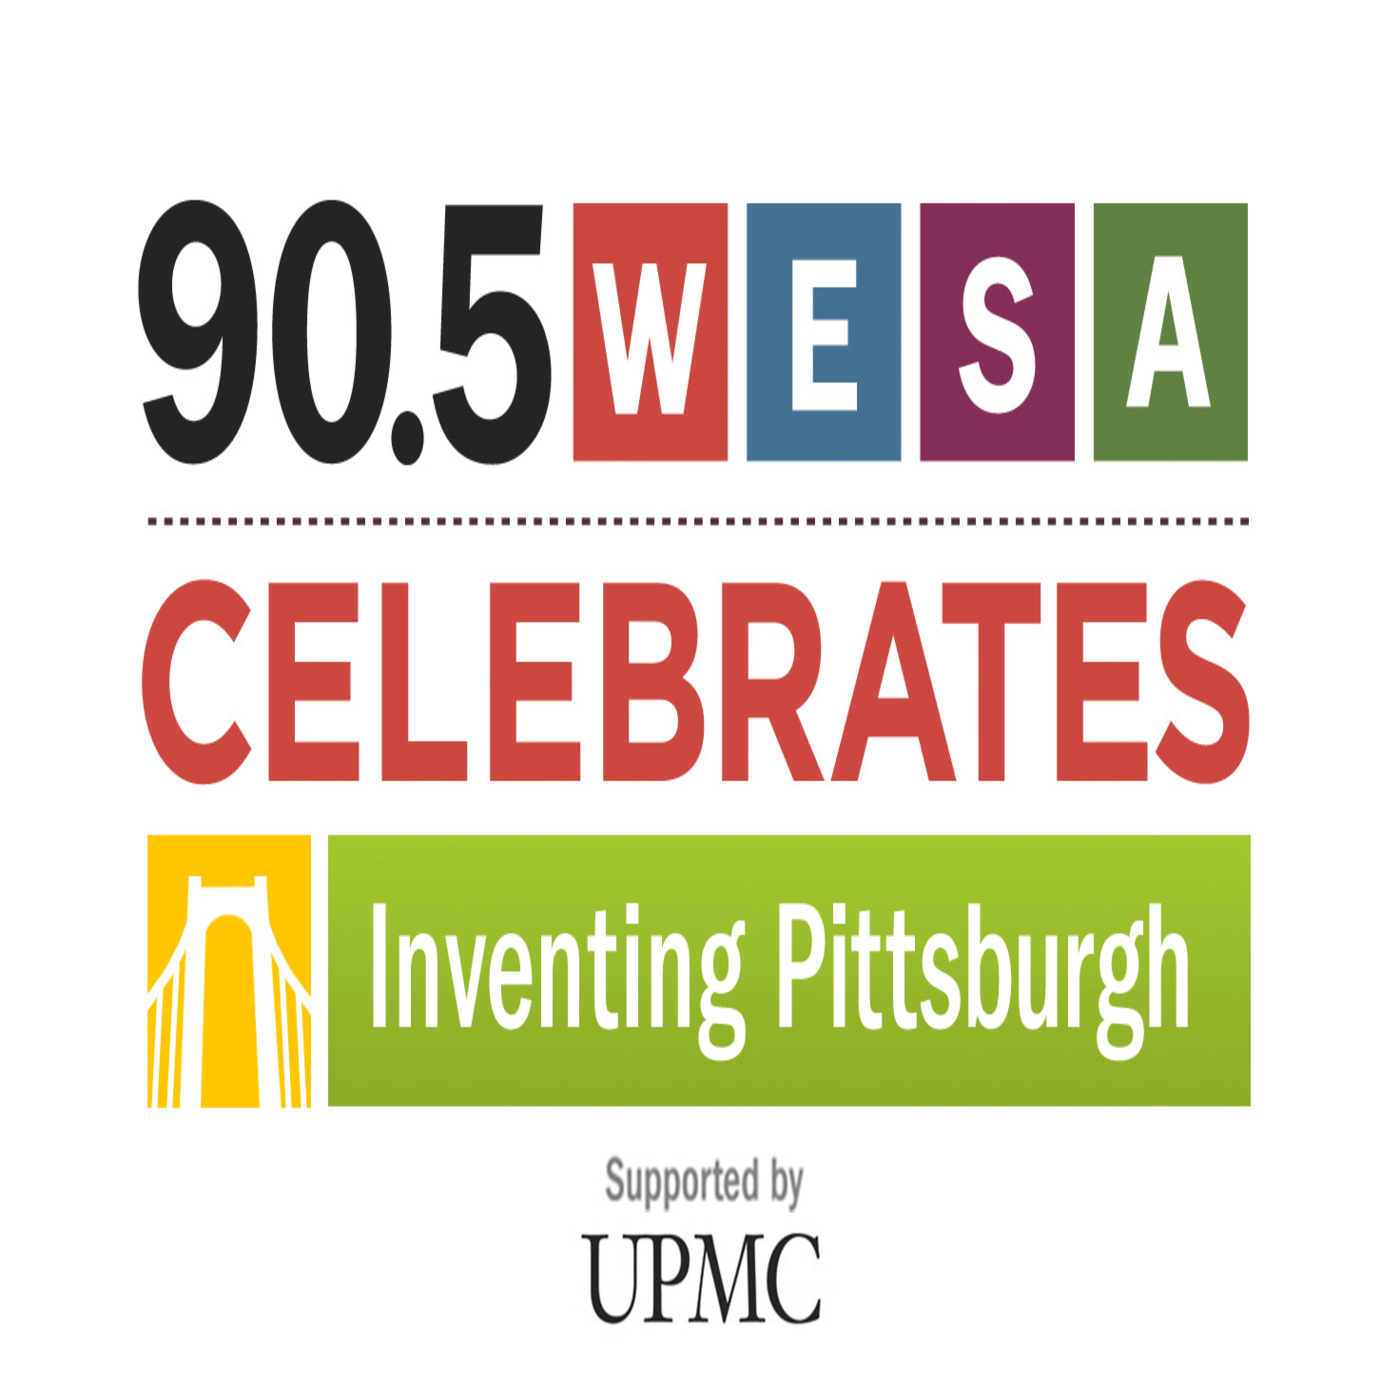 90.5 WESA Celebrates: Inventing Pittsburgh